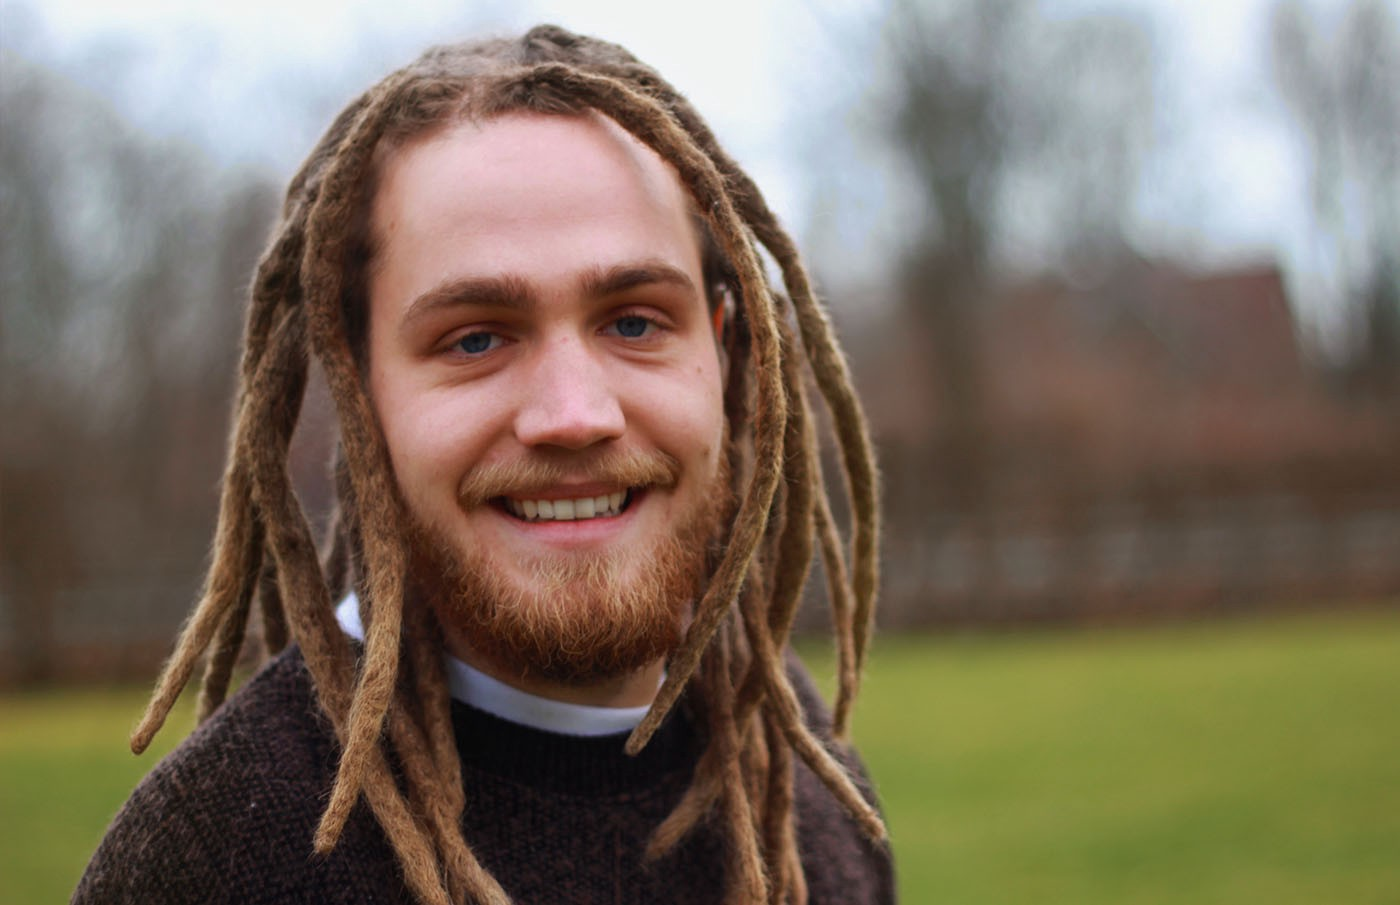 White Guy with Dreads Has No Idea Hes That Guy | by